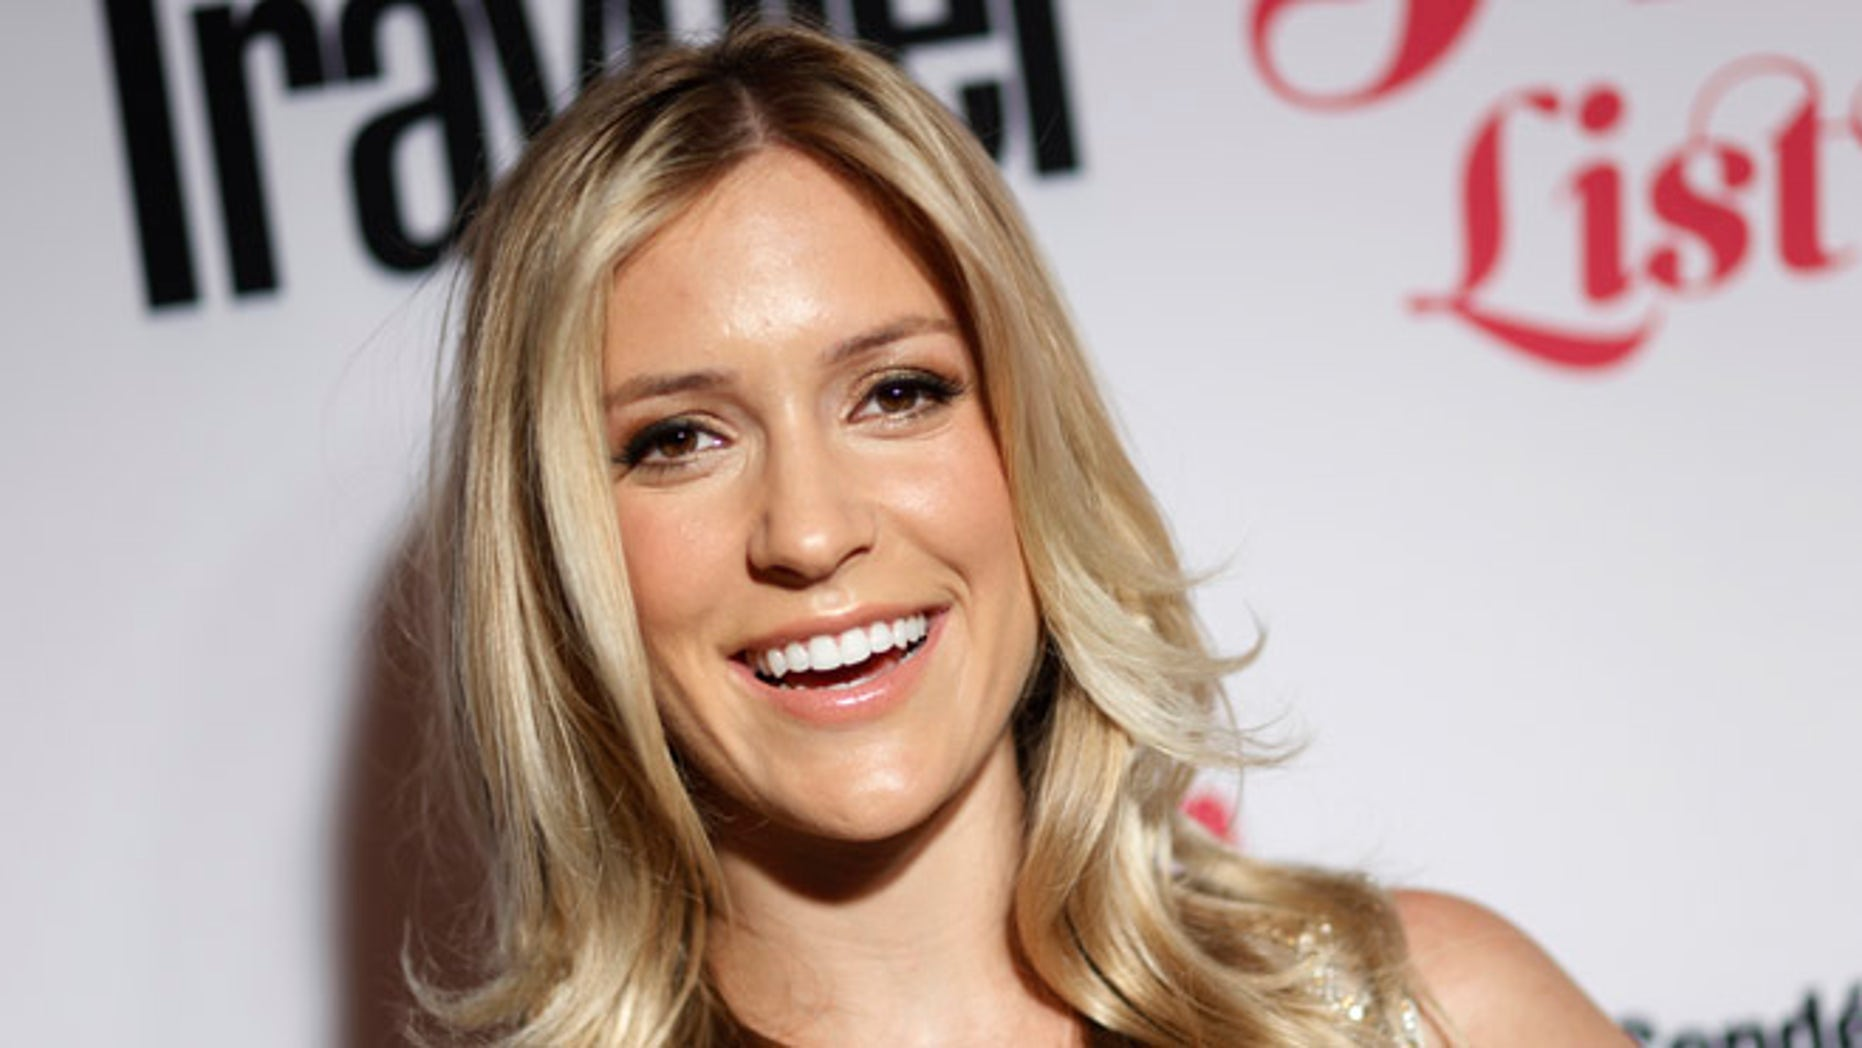 April 12, 2012: This file photo shows Kristin Cavallari at the Conde Nast Traveler Hot List Party at The Presidential Suite of Hotel Bel-Air in Los Angeles.